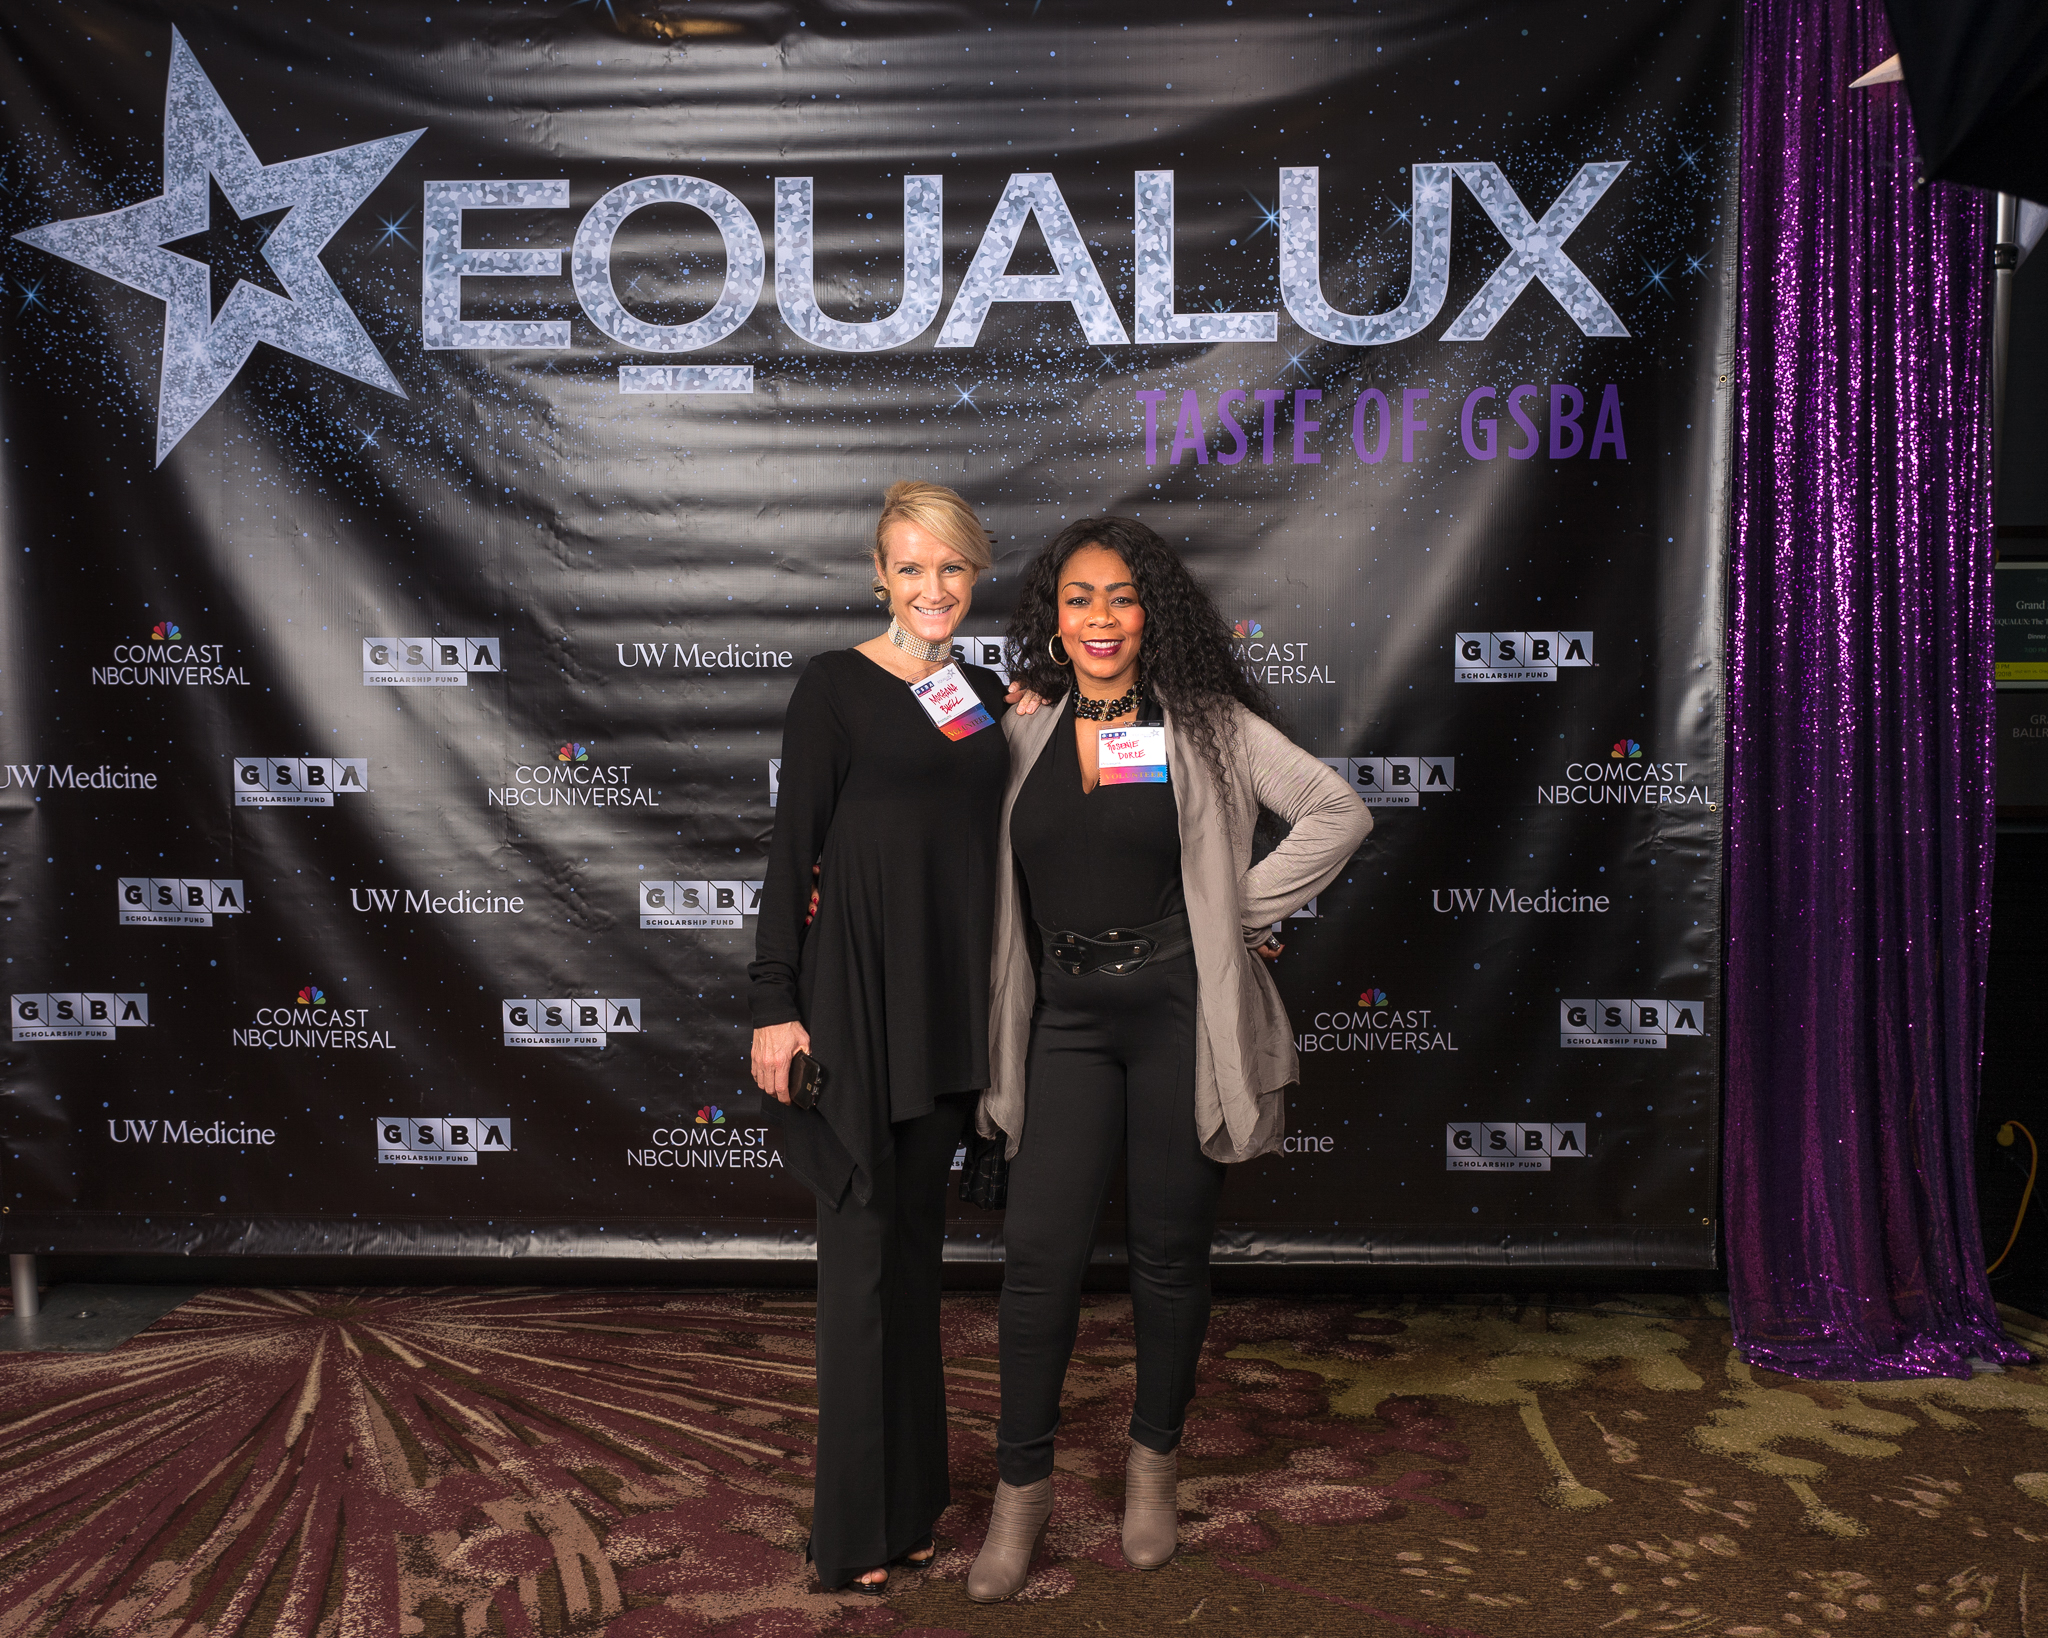 111718_GSBA EQUALUX at The Westin Seattle (Credit- Nate Gowdy)-128.jpg